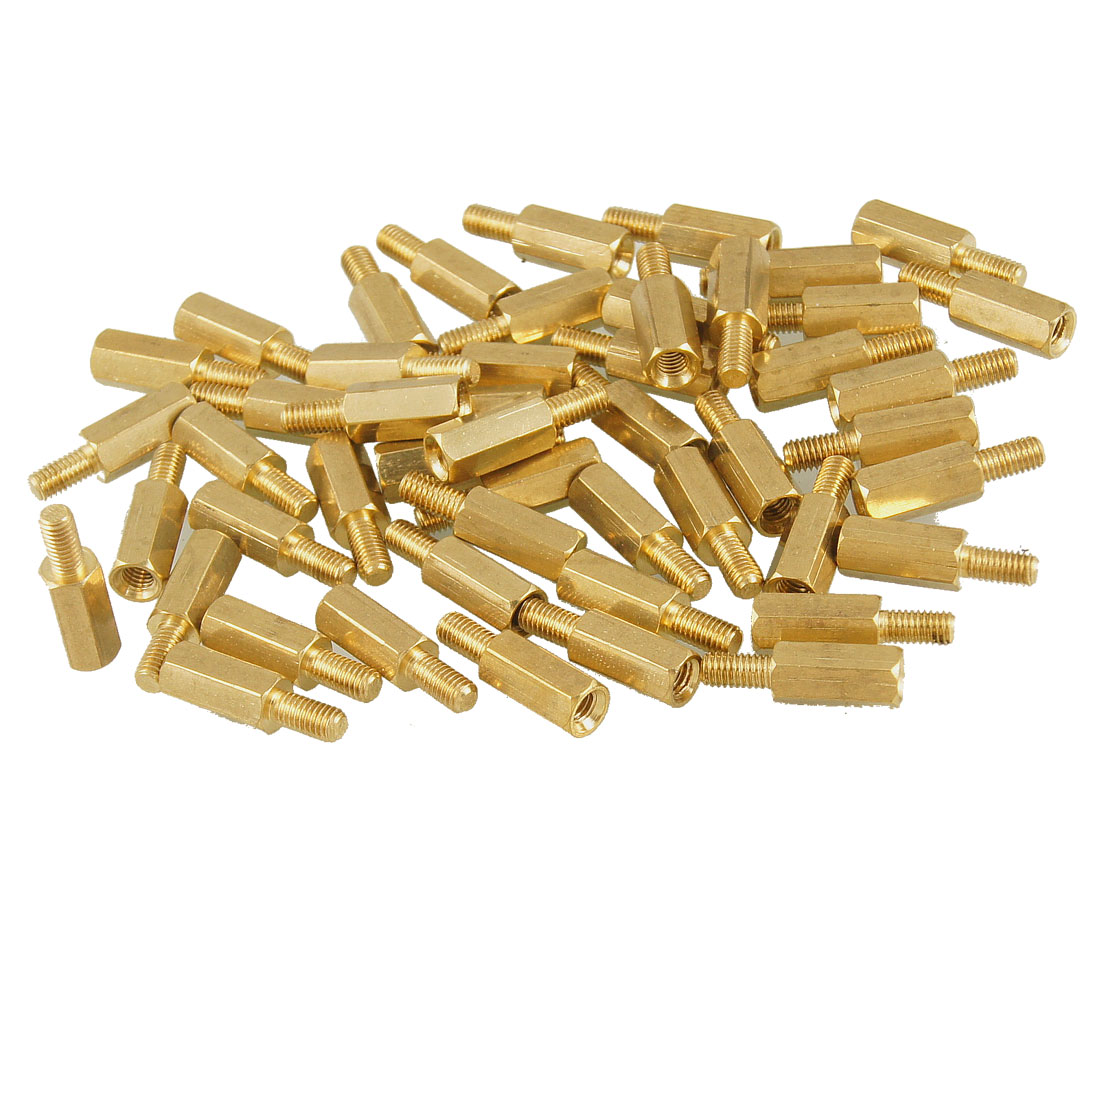 50 Pcs Brass Screw Standoffs Hexagonal Spacers M3 Male x M3 Female 10mm Length